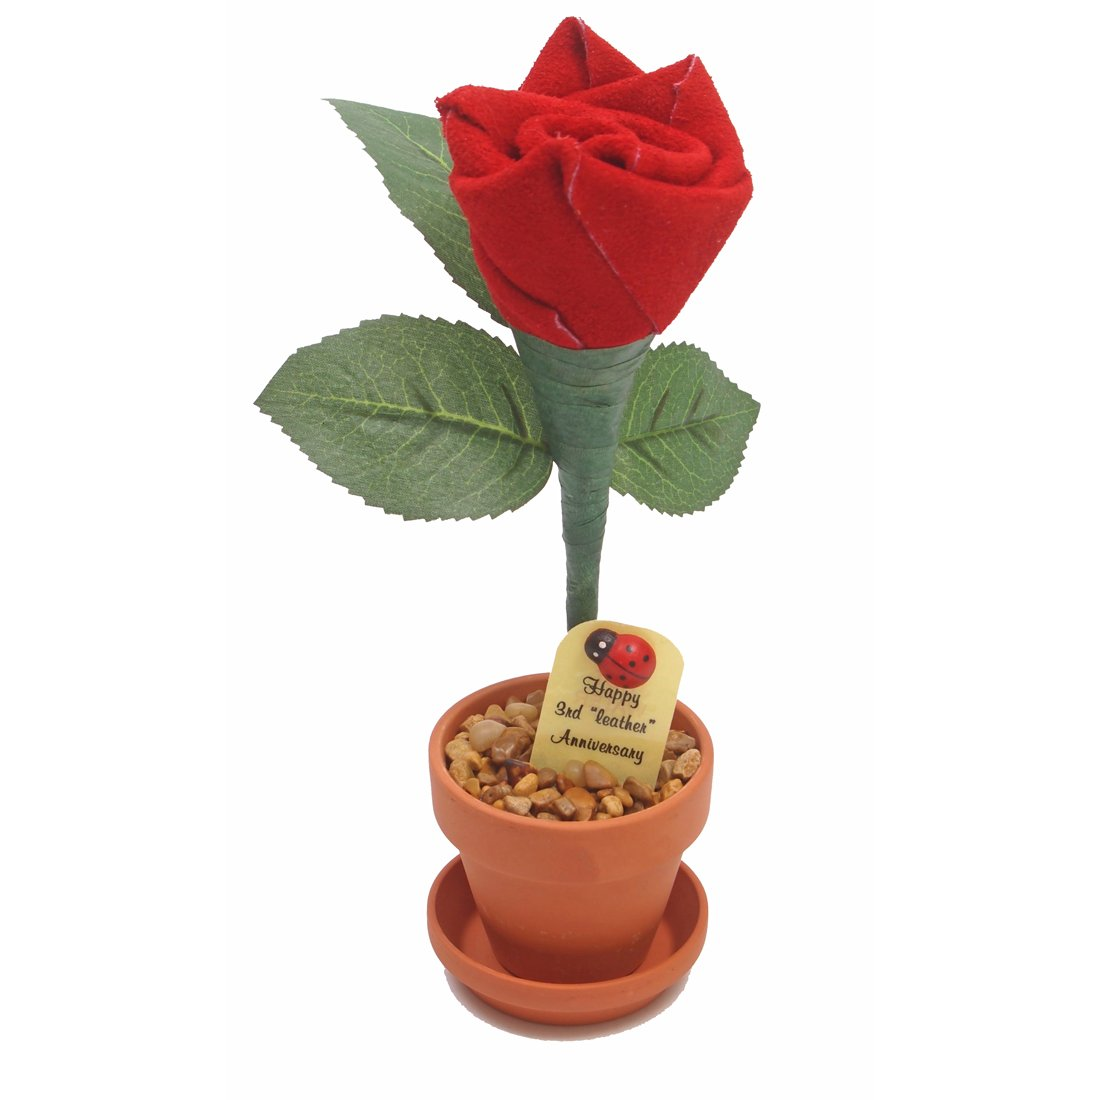 3 Wedding Anniversary Gift: 3rd Wedding Anniversary Gift Potted Leather Rose